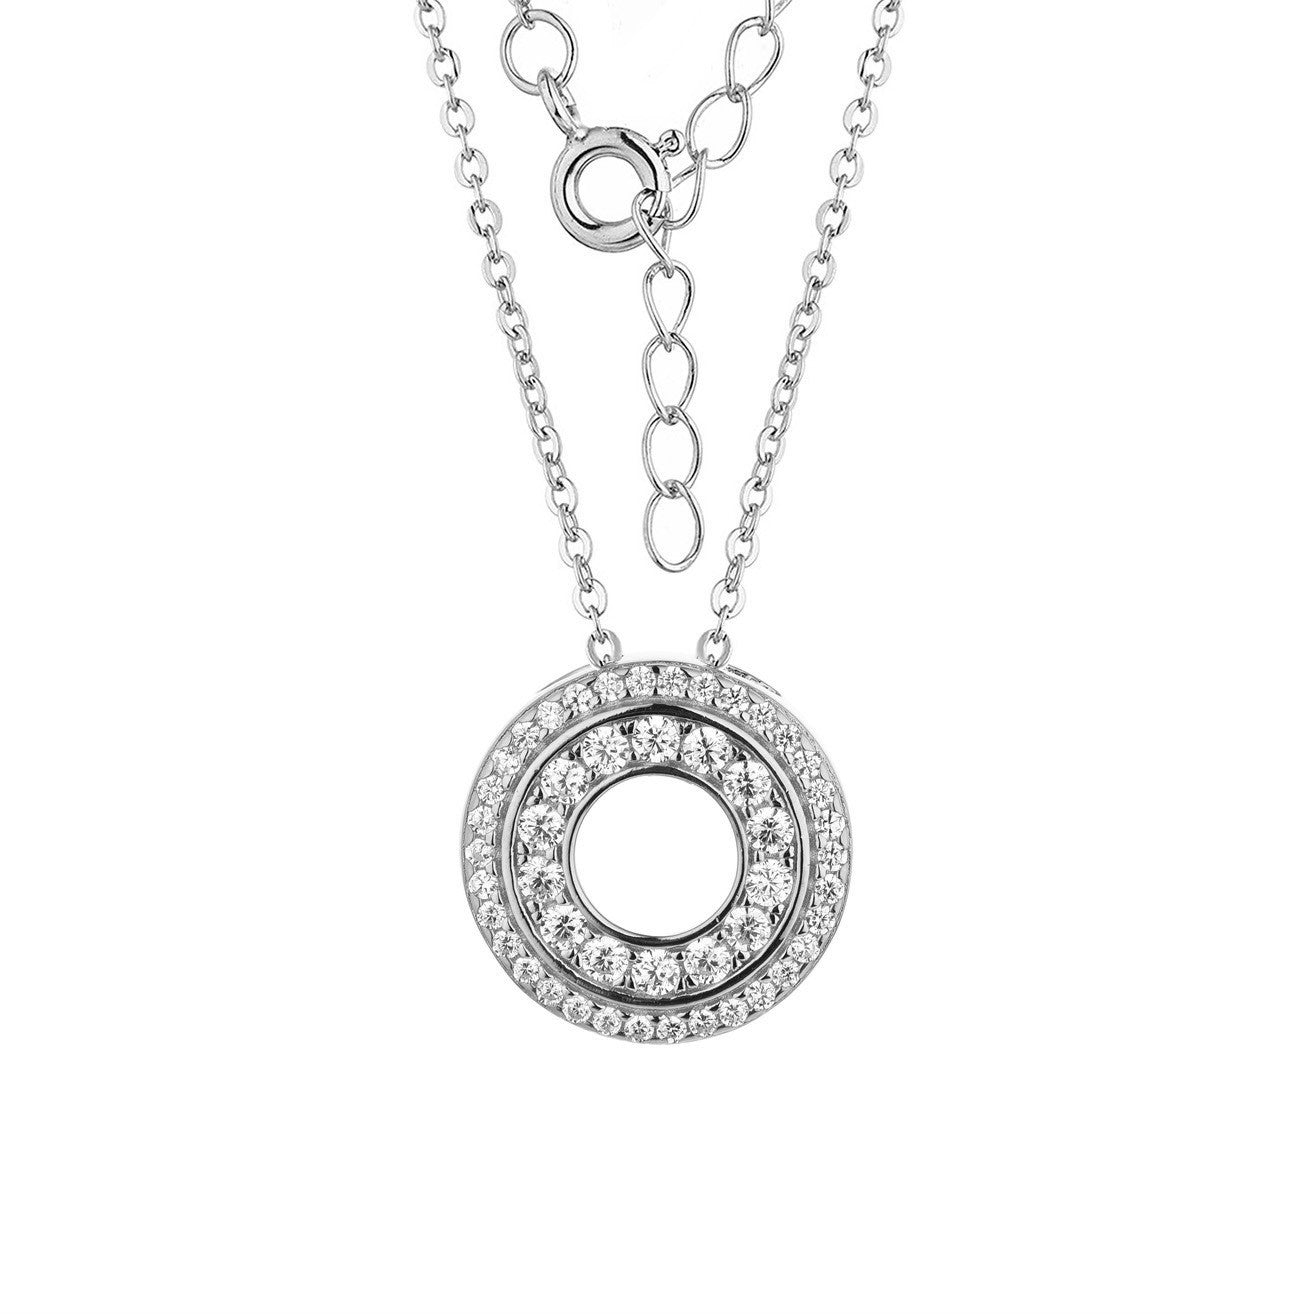 Eternity sterling silver pendant with Chain